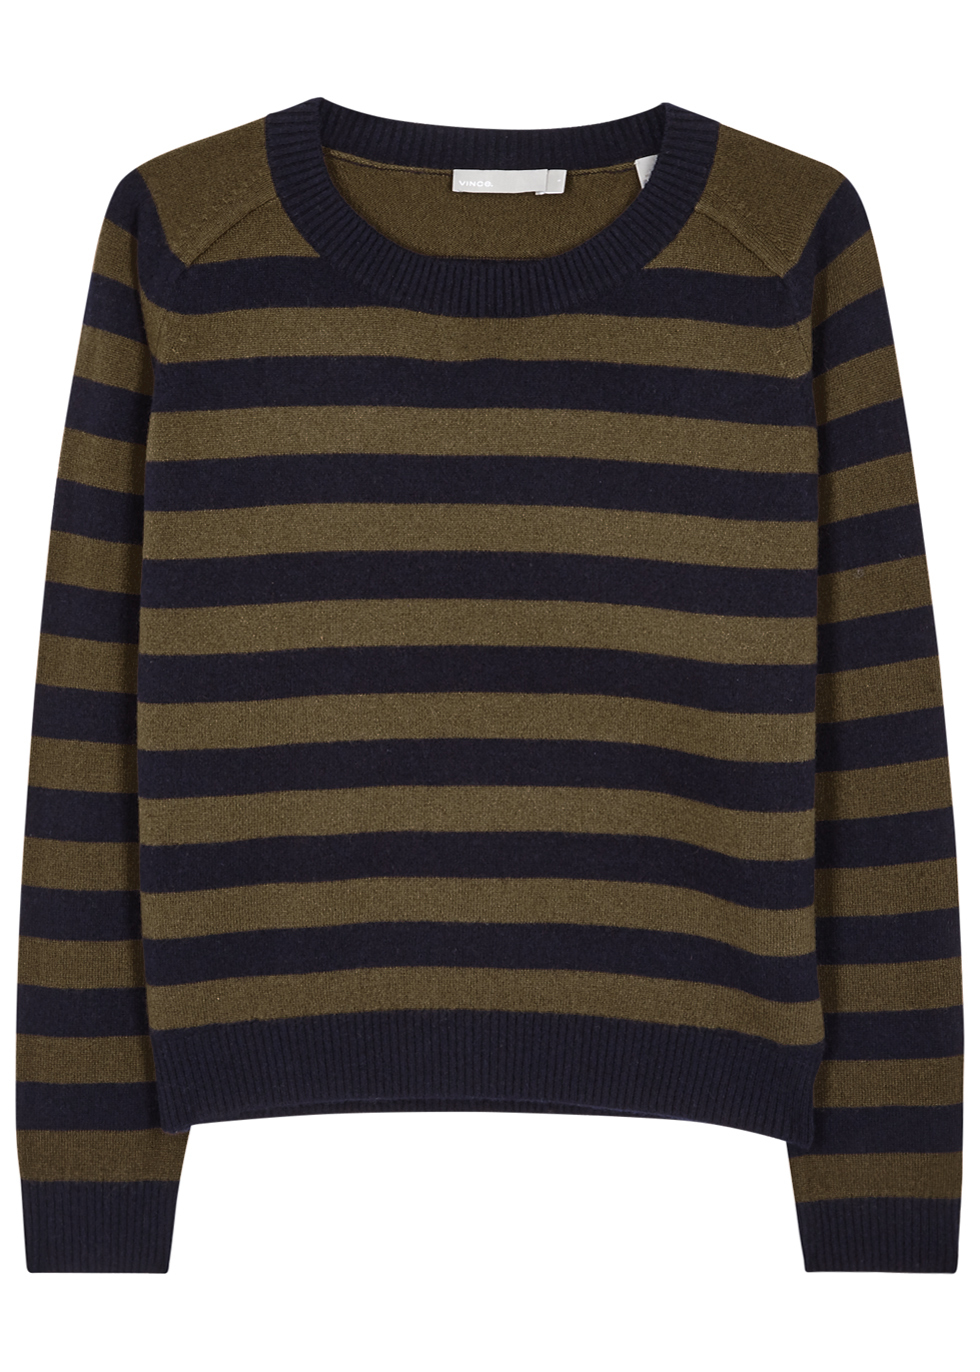 Regiment Stripe Olive And Navy Cashmere Jumper - pattern: horizontal stripes; style: standard; predominant colour: khaki; secondary colour: black; occasions: casual; length: standard; fit: standard fit; neckline: crew; fibres: cashmere - 100%; sleeve length: long sleeve; sleeve style: standard; texture group: knits/crochet; pattern type: fabric; multicoloured: multicoloured; season: a/w 2016; wardrobe: highlight